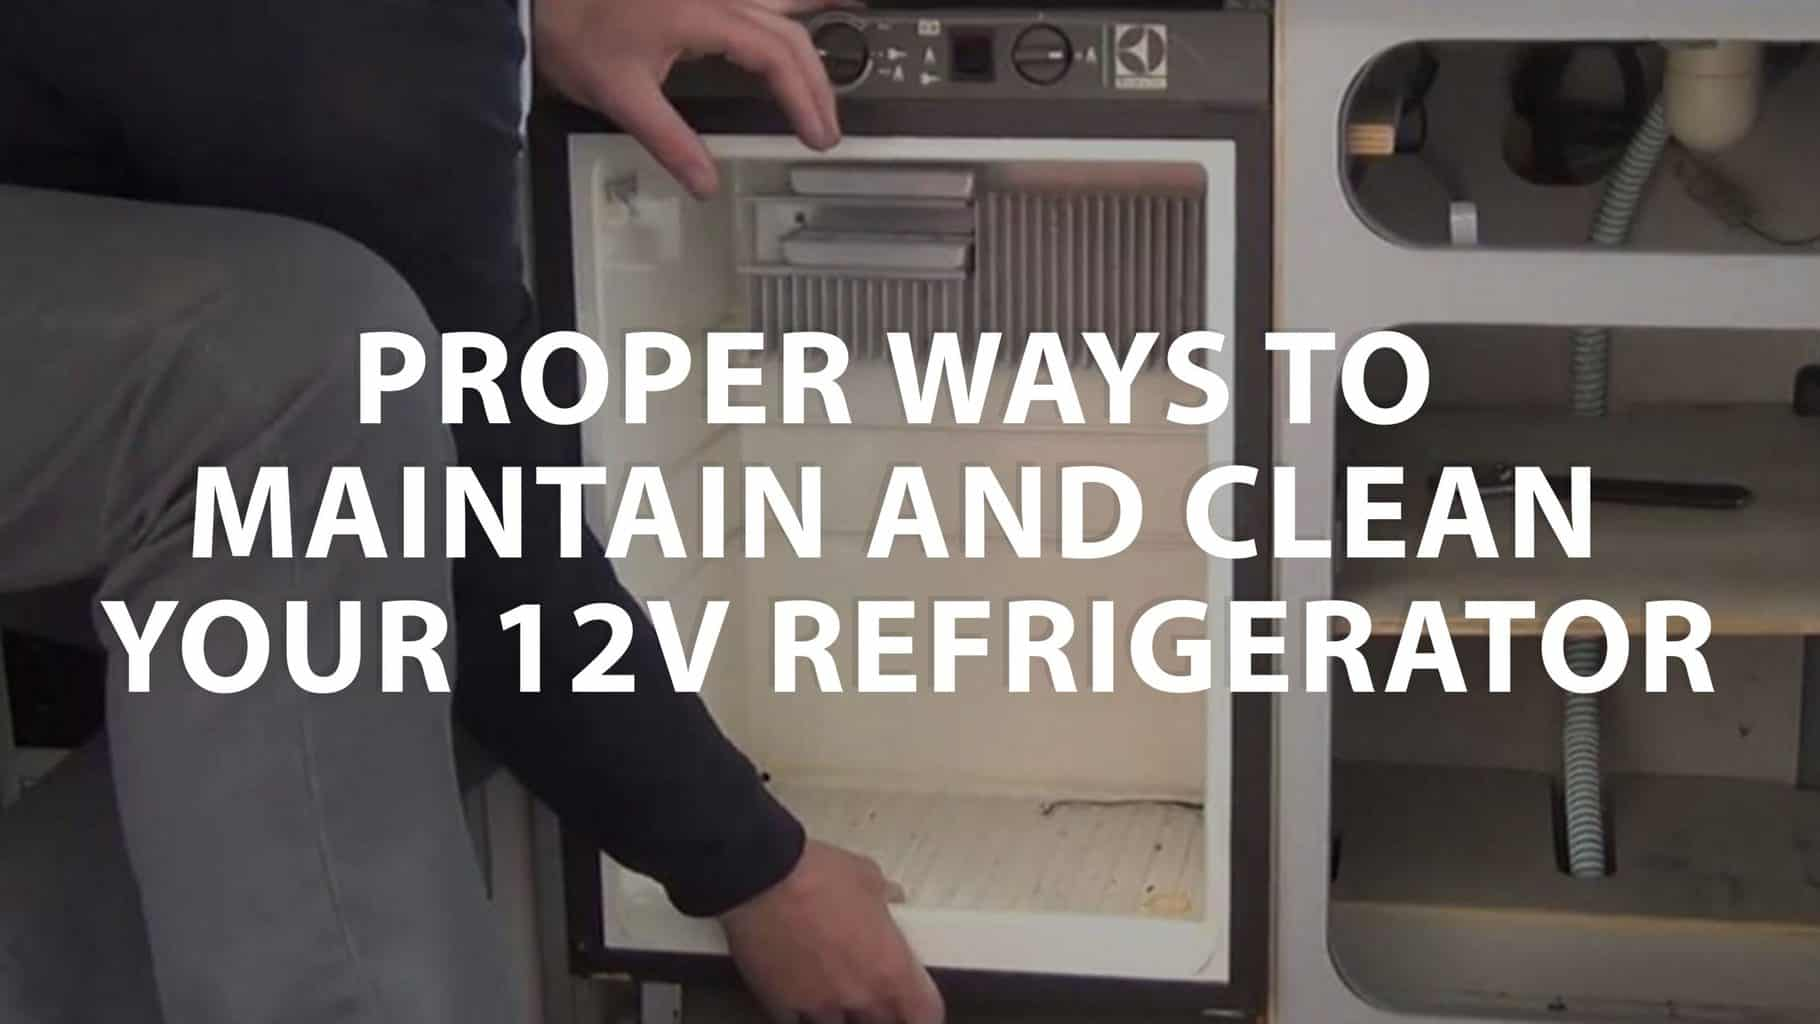 featured image on Proper ways to maintain and clean your 12v refrigerator